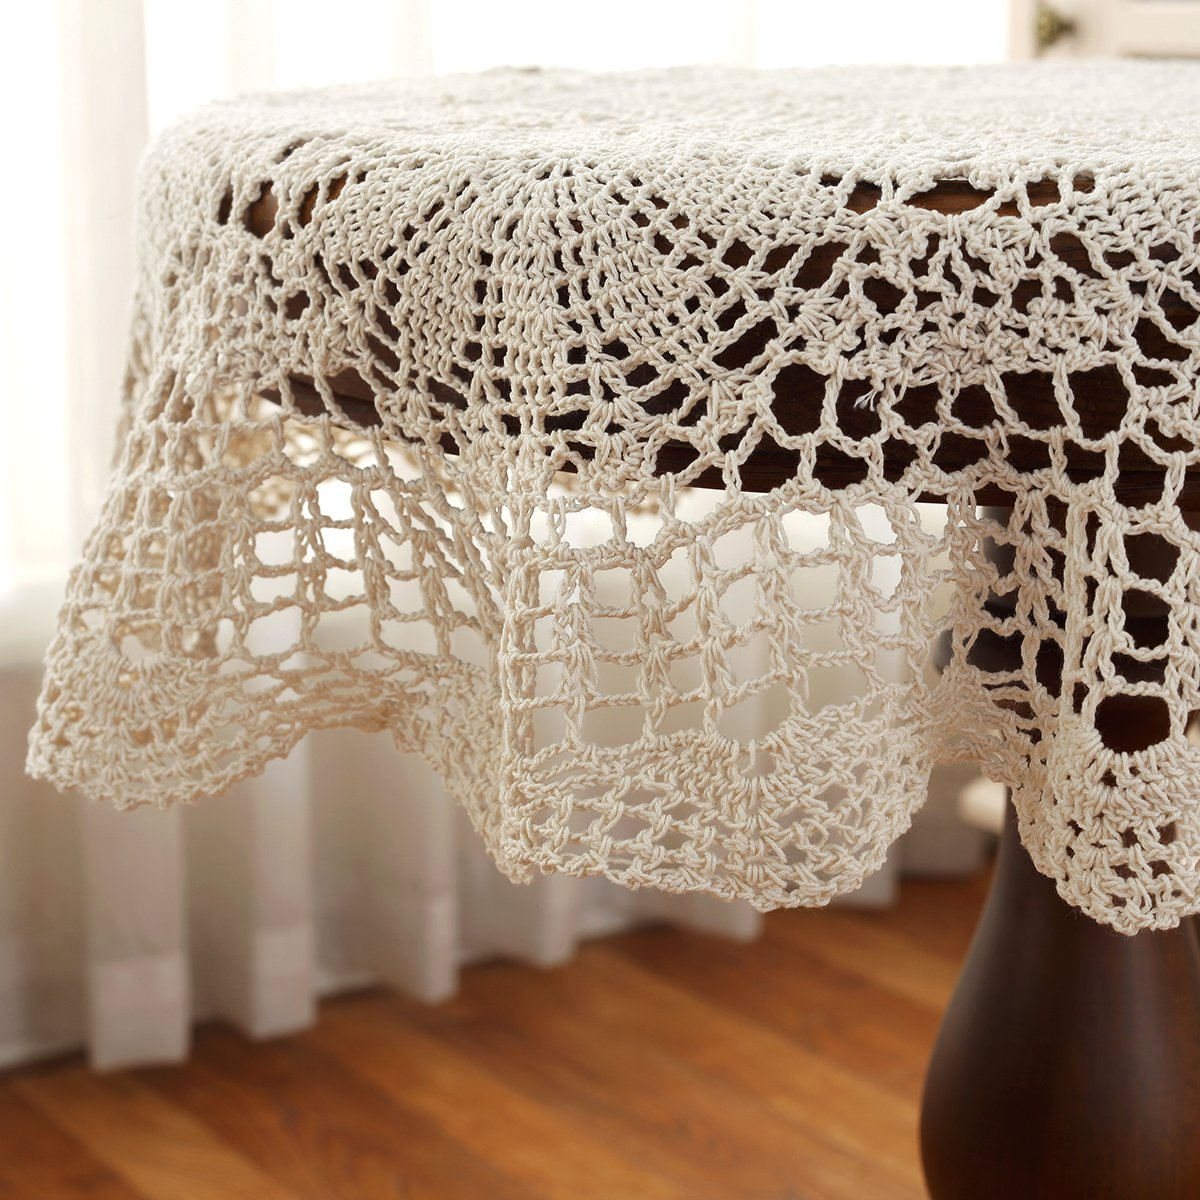 Gracebuy 39 Inch Beige Round 100 Handmade Crochet Lace Oval Doily Diagram Pinterest Tablecloth Home Kitchen